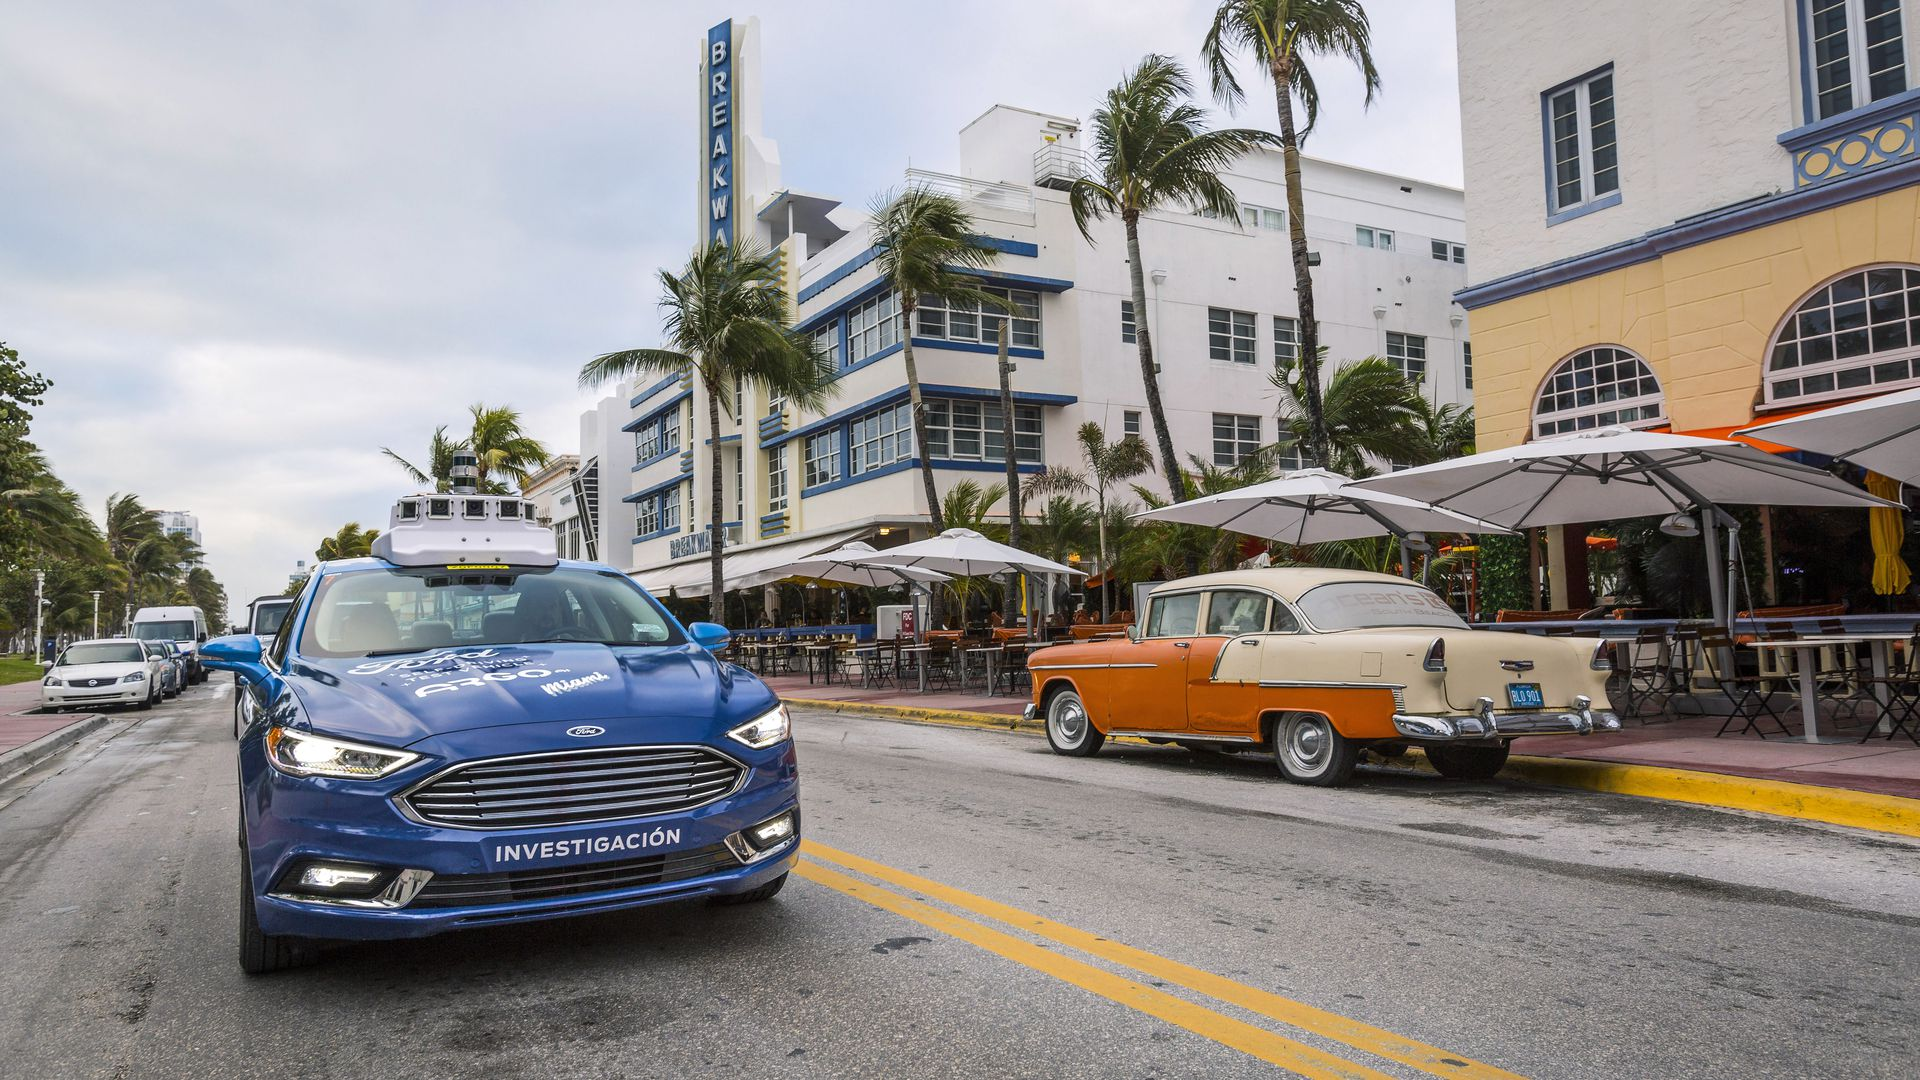 Image of Ford self-driving test vehicle in Miami